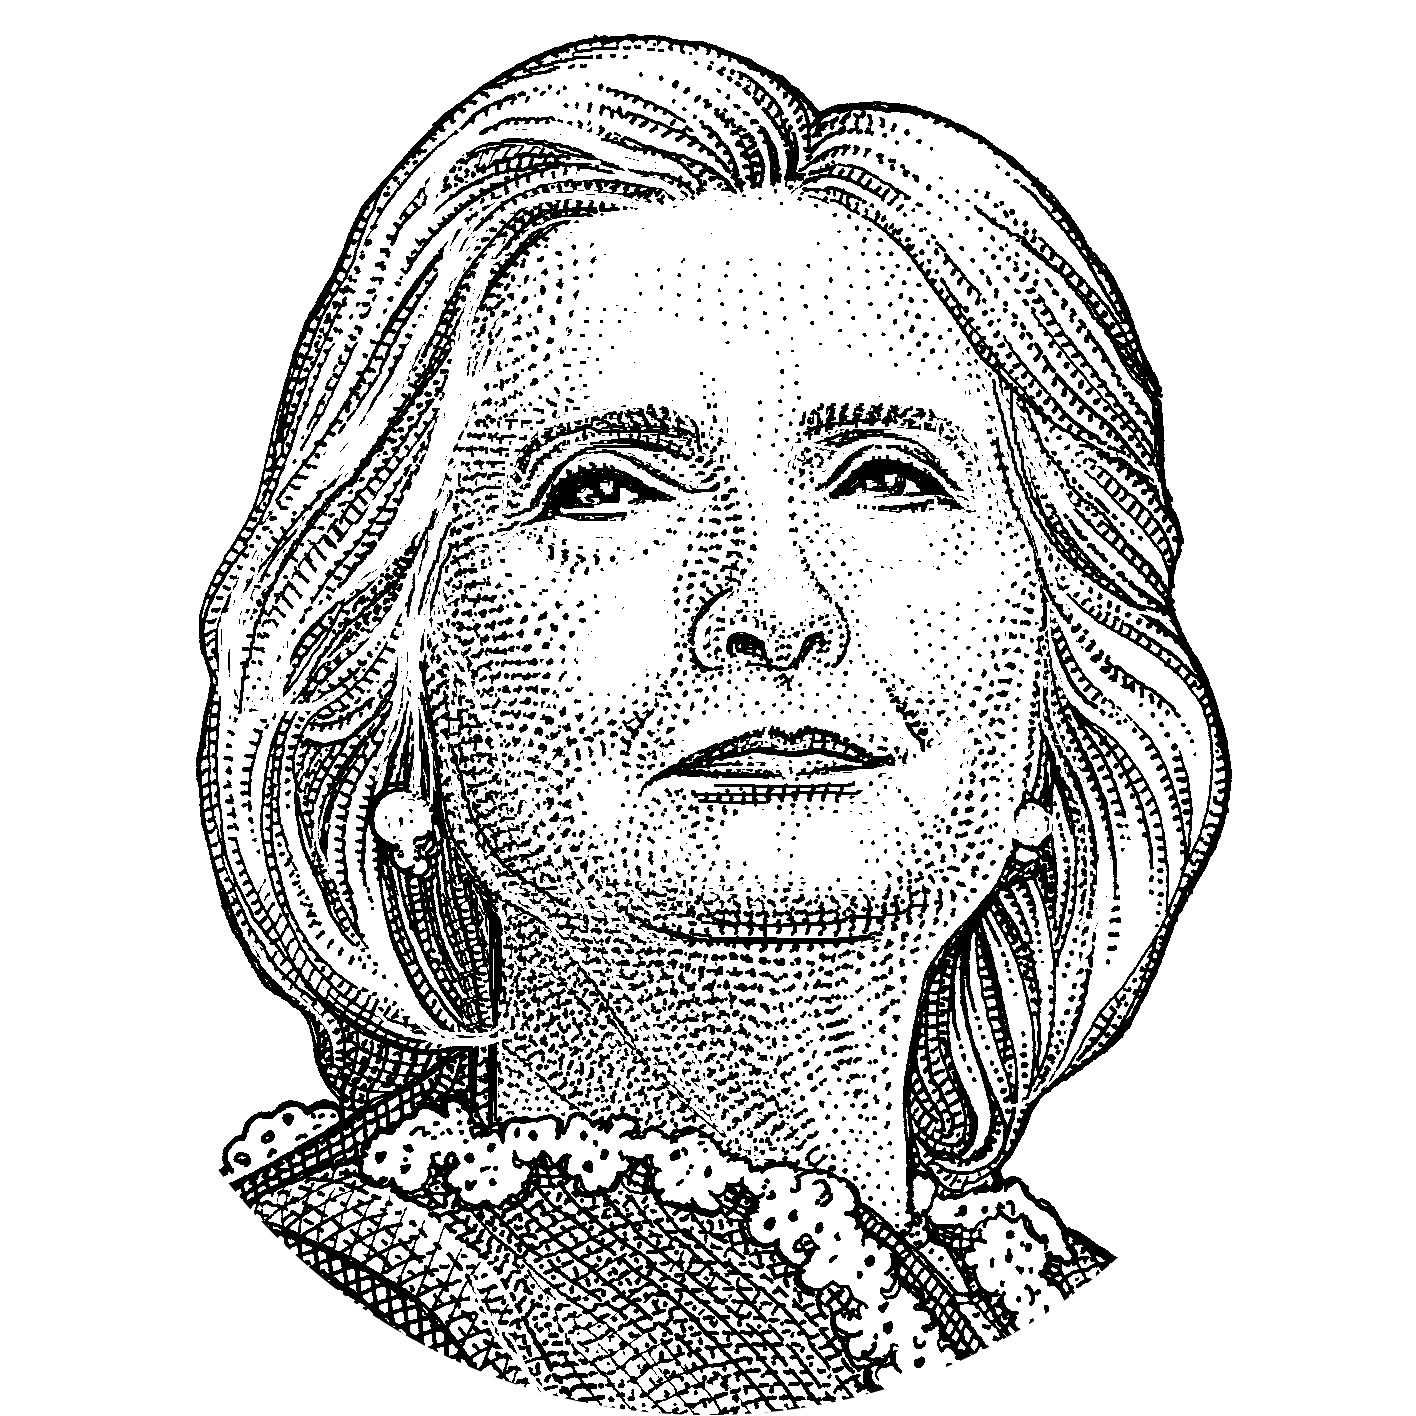 United Art Photography States Hillary Monochrome Clinton PNG Image